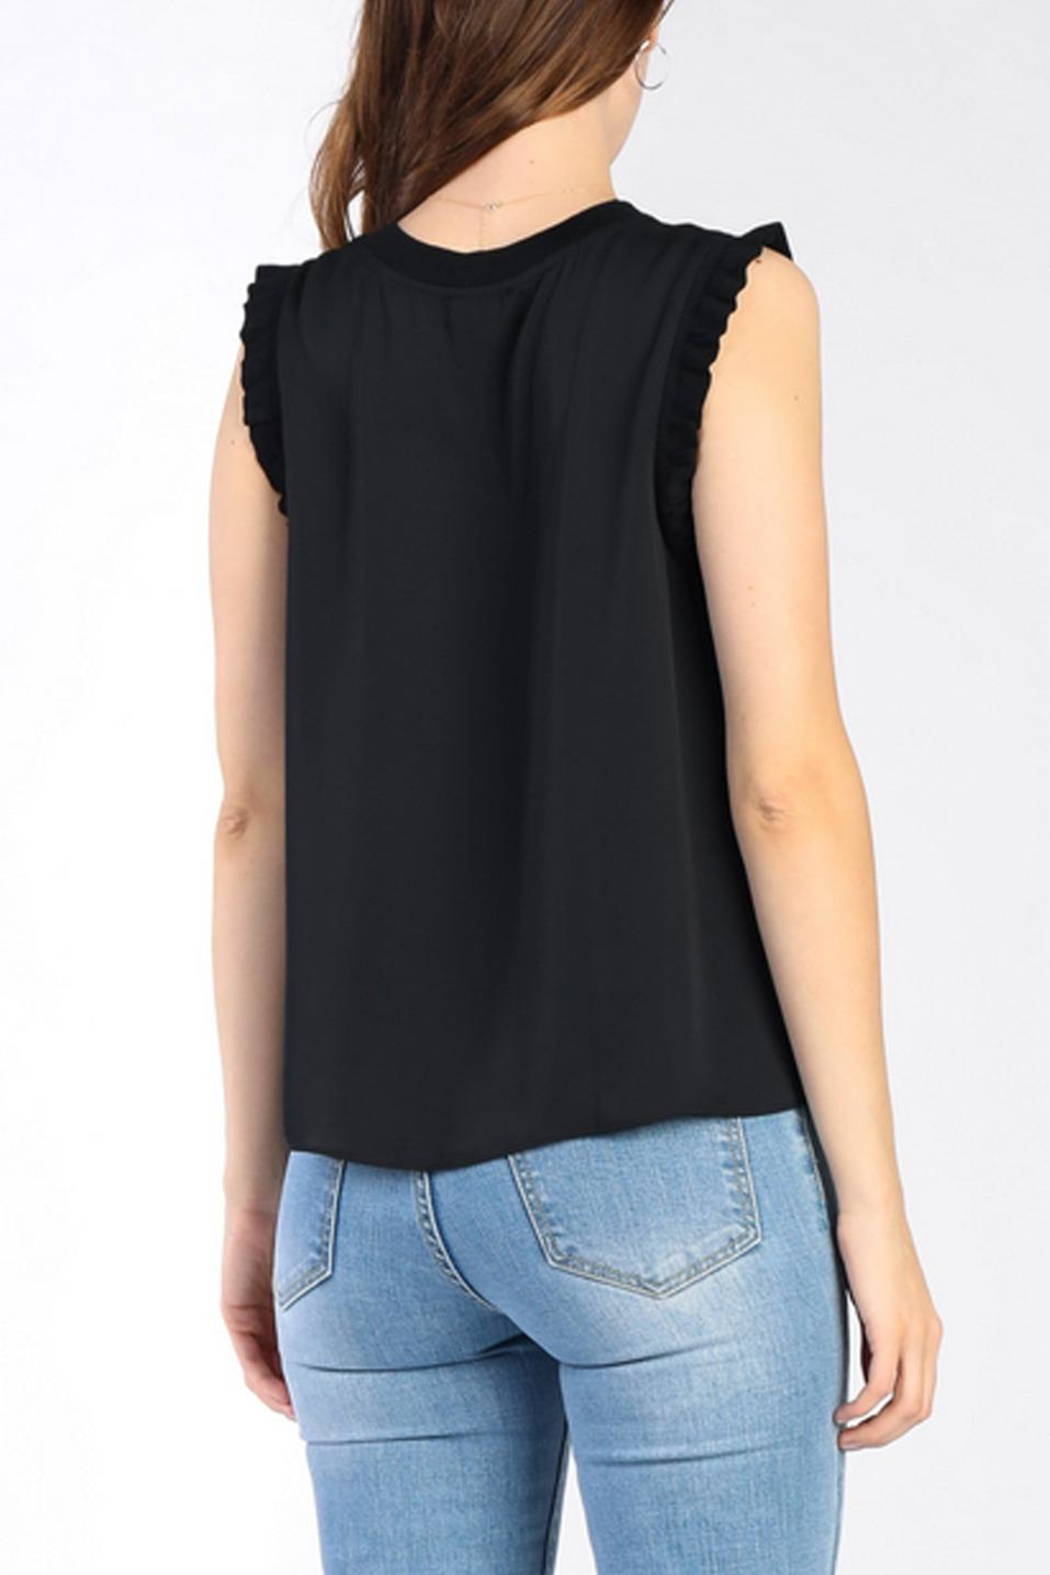 Current Air Ruffle Knit Tank - Front Full Image